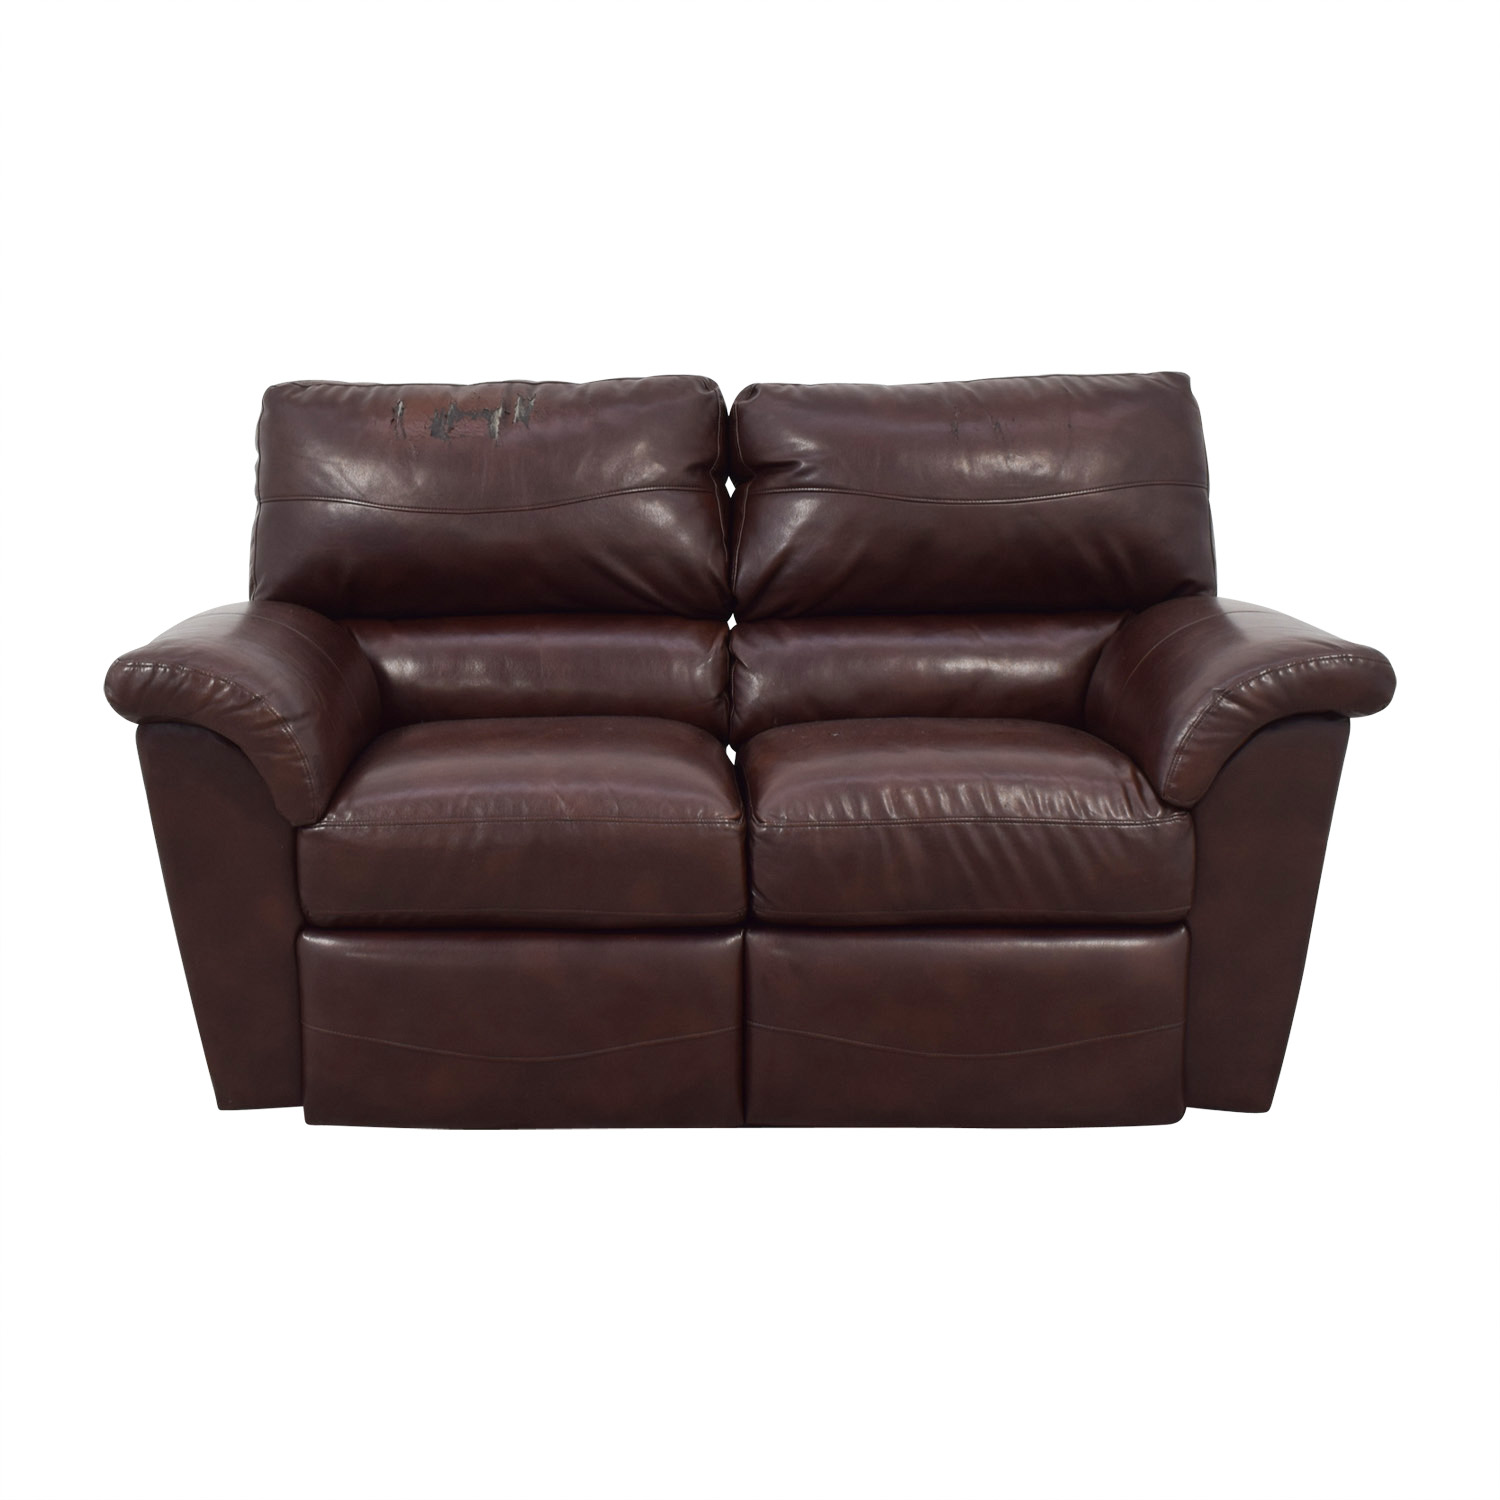 Leather Sofa La Z Boy 65 Off La Z Boy La Z Boy Oscar Leather Reclining Love Seat Sofas